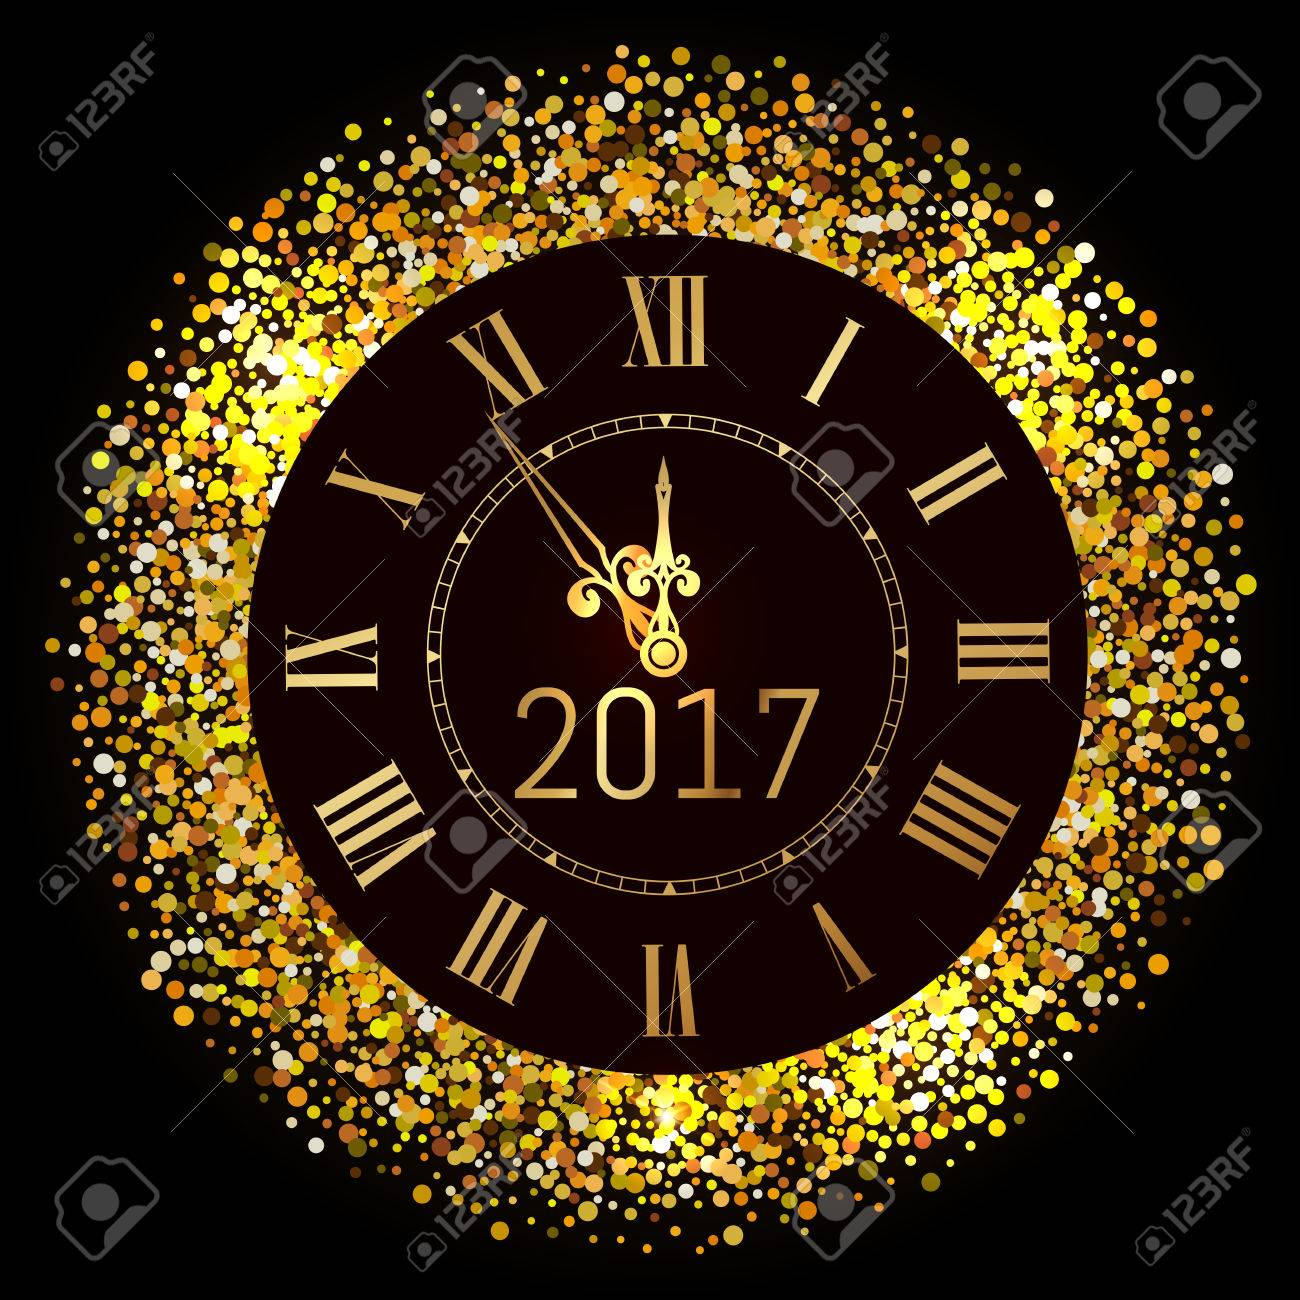 Vector 2017 shiny Merry Christmas and Happy new year 2017 gold clock with glitter frame. Vintage elegant luxury gold watch midnight New Year. Vector illustration EPS 10 - 72312991